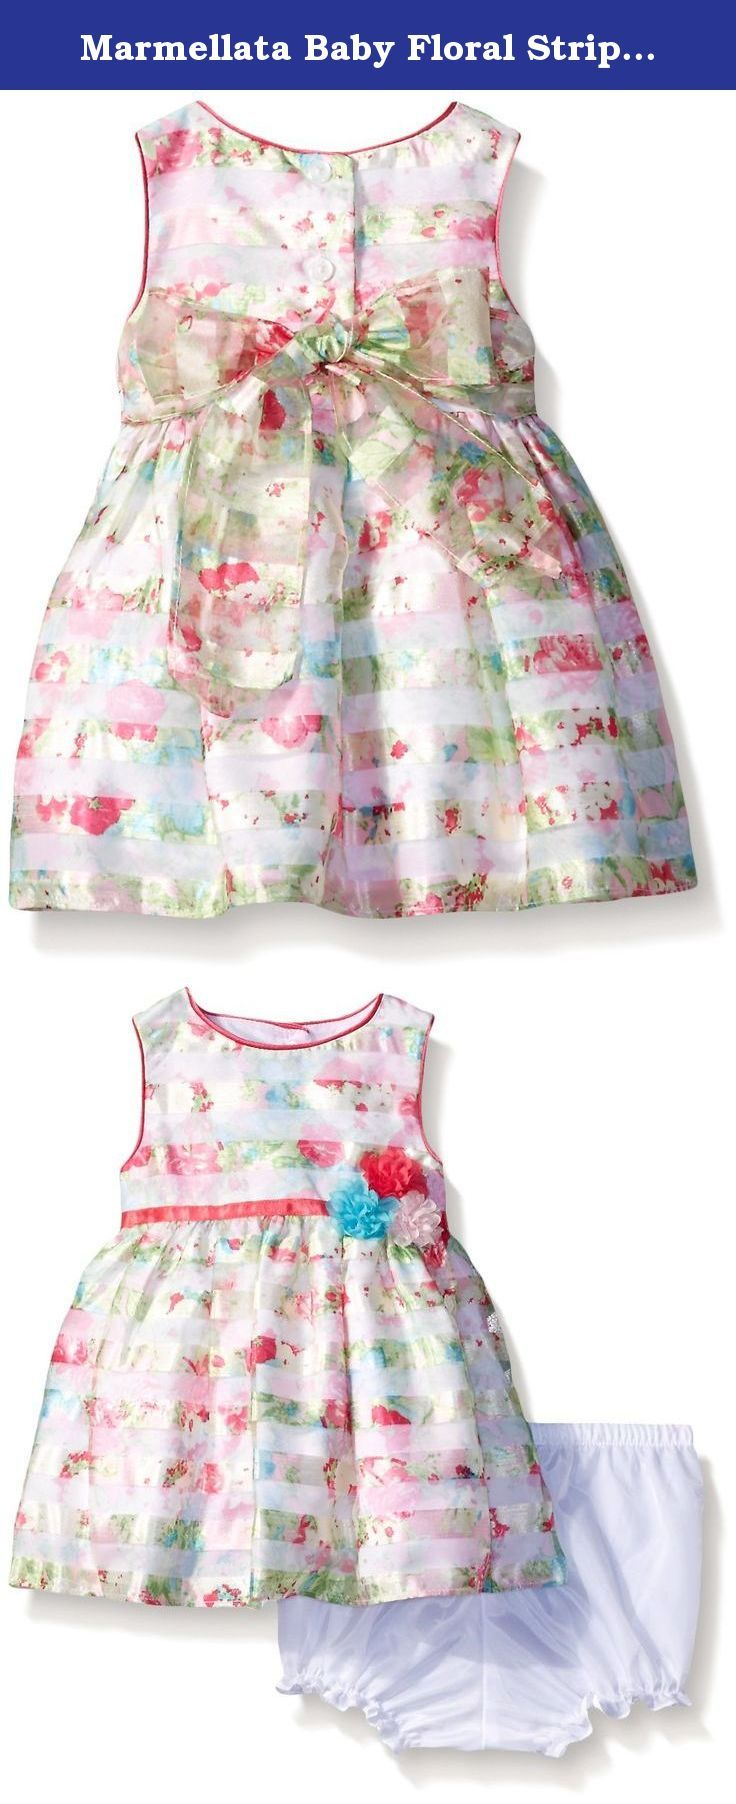 Marmellata Baby Floral Striped Party Dress, Multi, 6-9 Months. This fun floral dress has a hint of sparkle and a full party skirt.